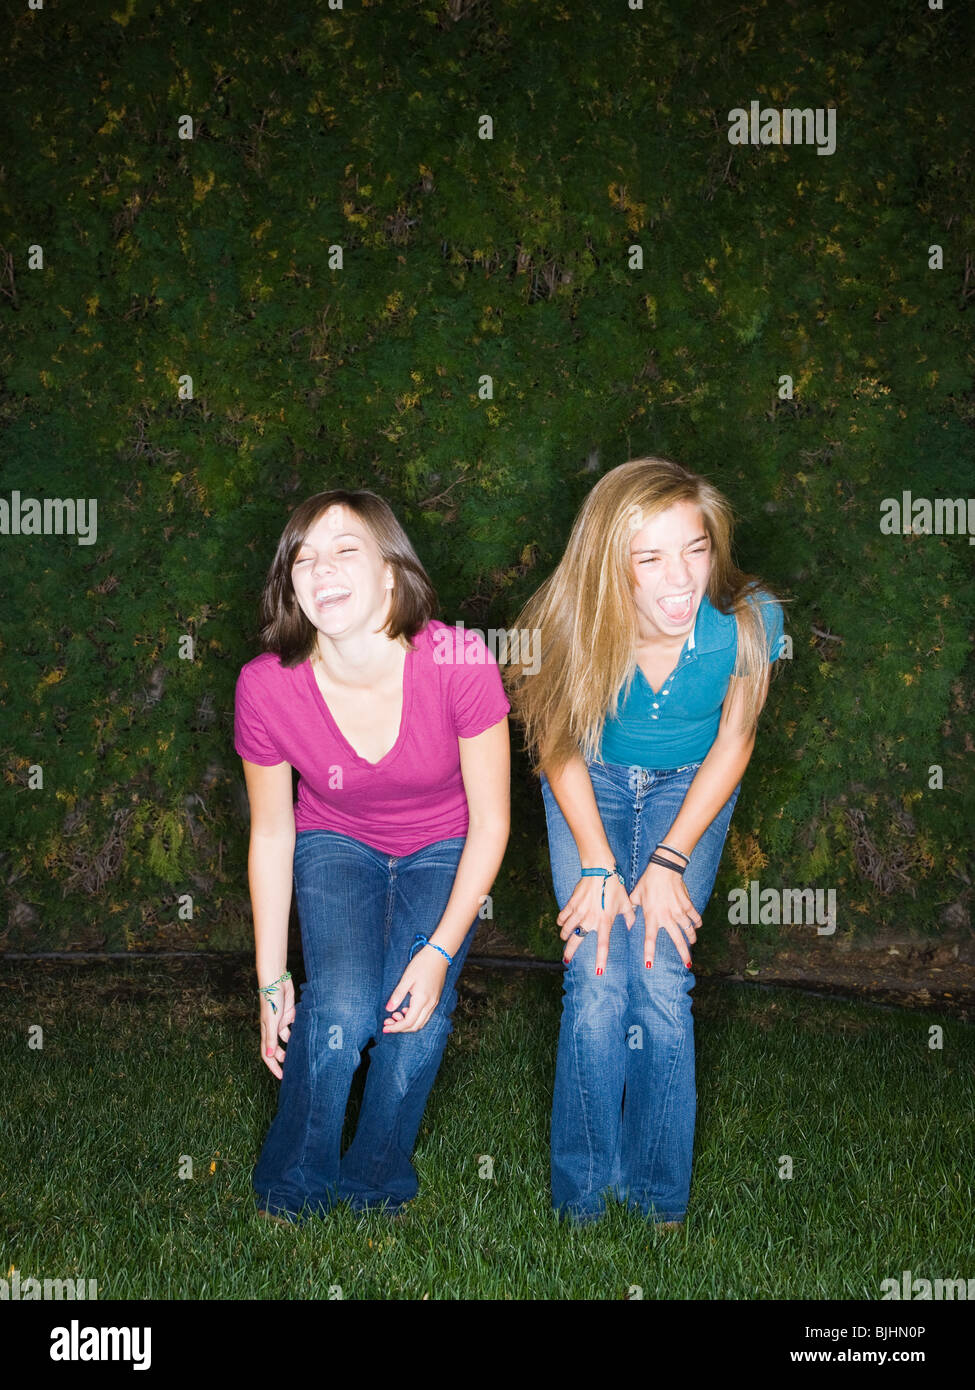 two friends in the backyard at night - Stock Image